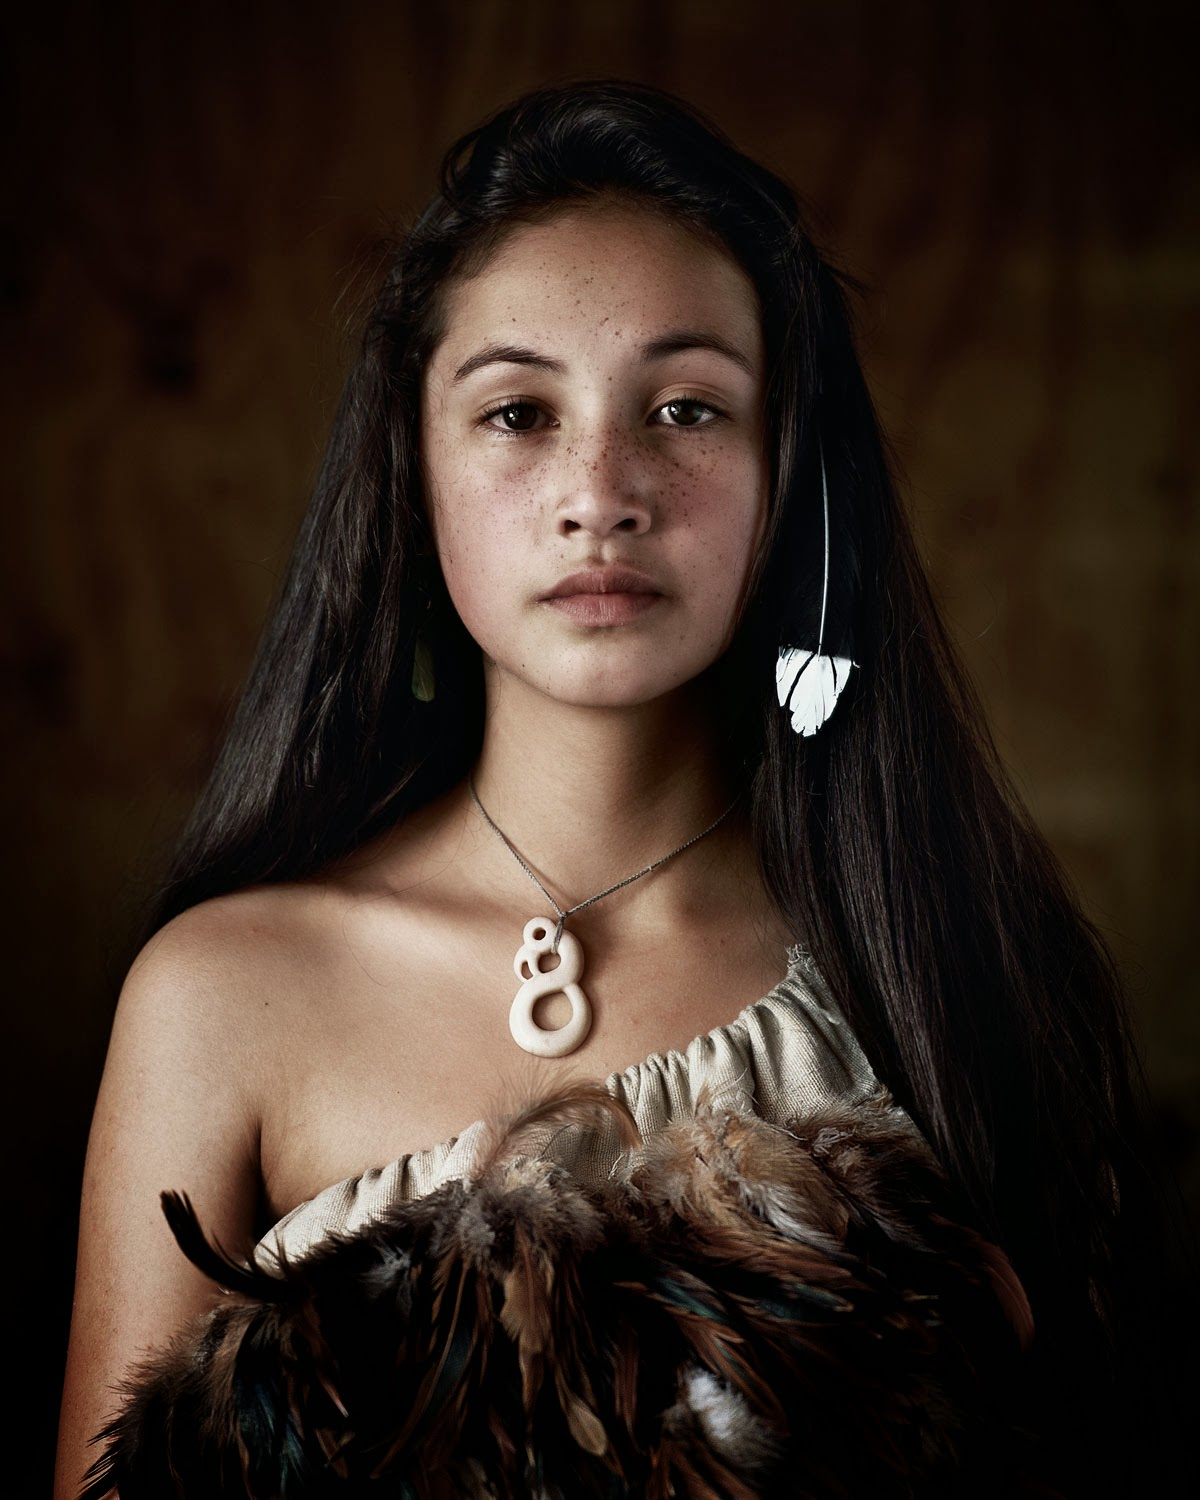 hot maori girls latino